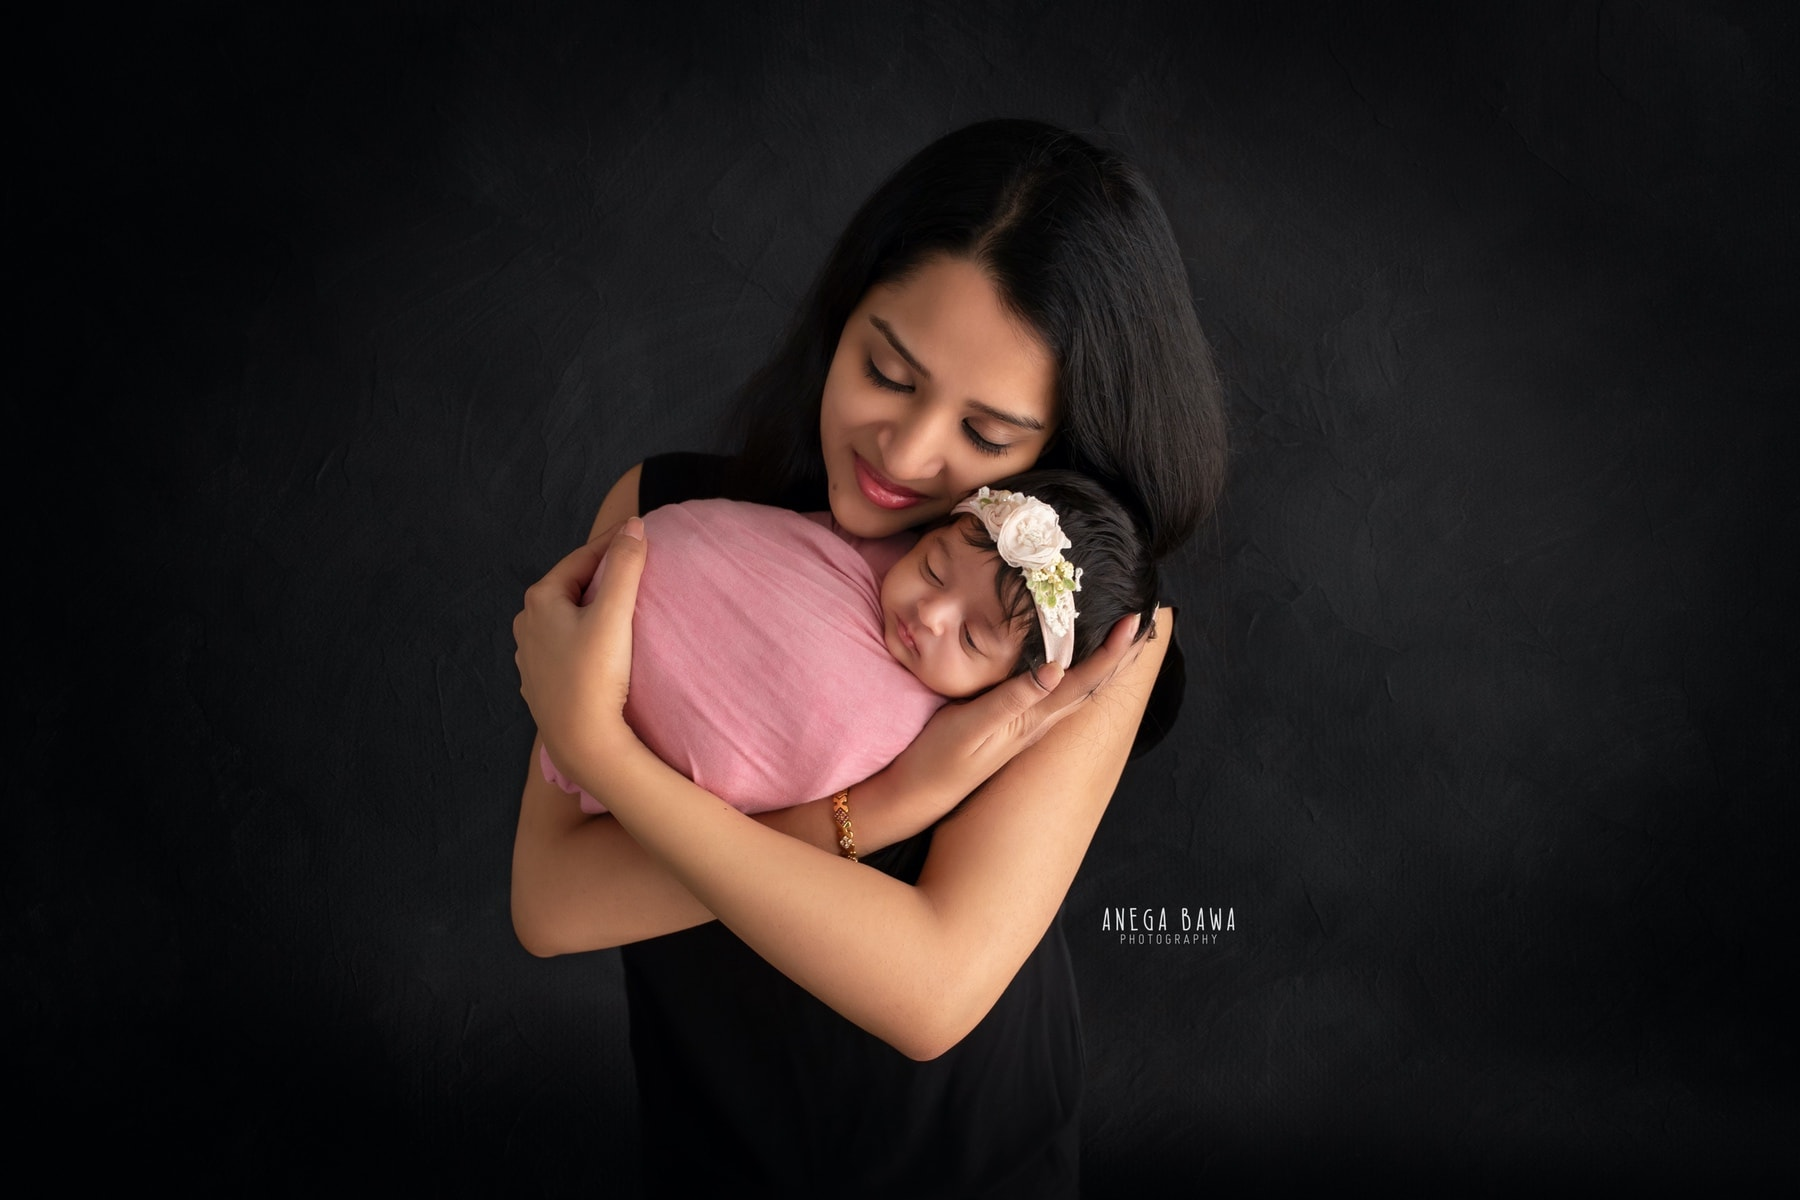 black pink mother and baby photography delhi 9 days baby girl photoshoot gurgaon anega bawa